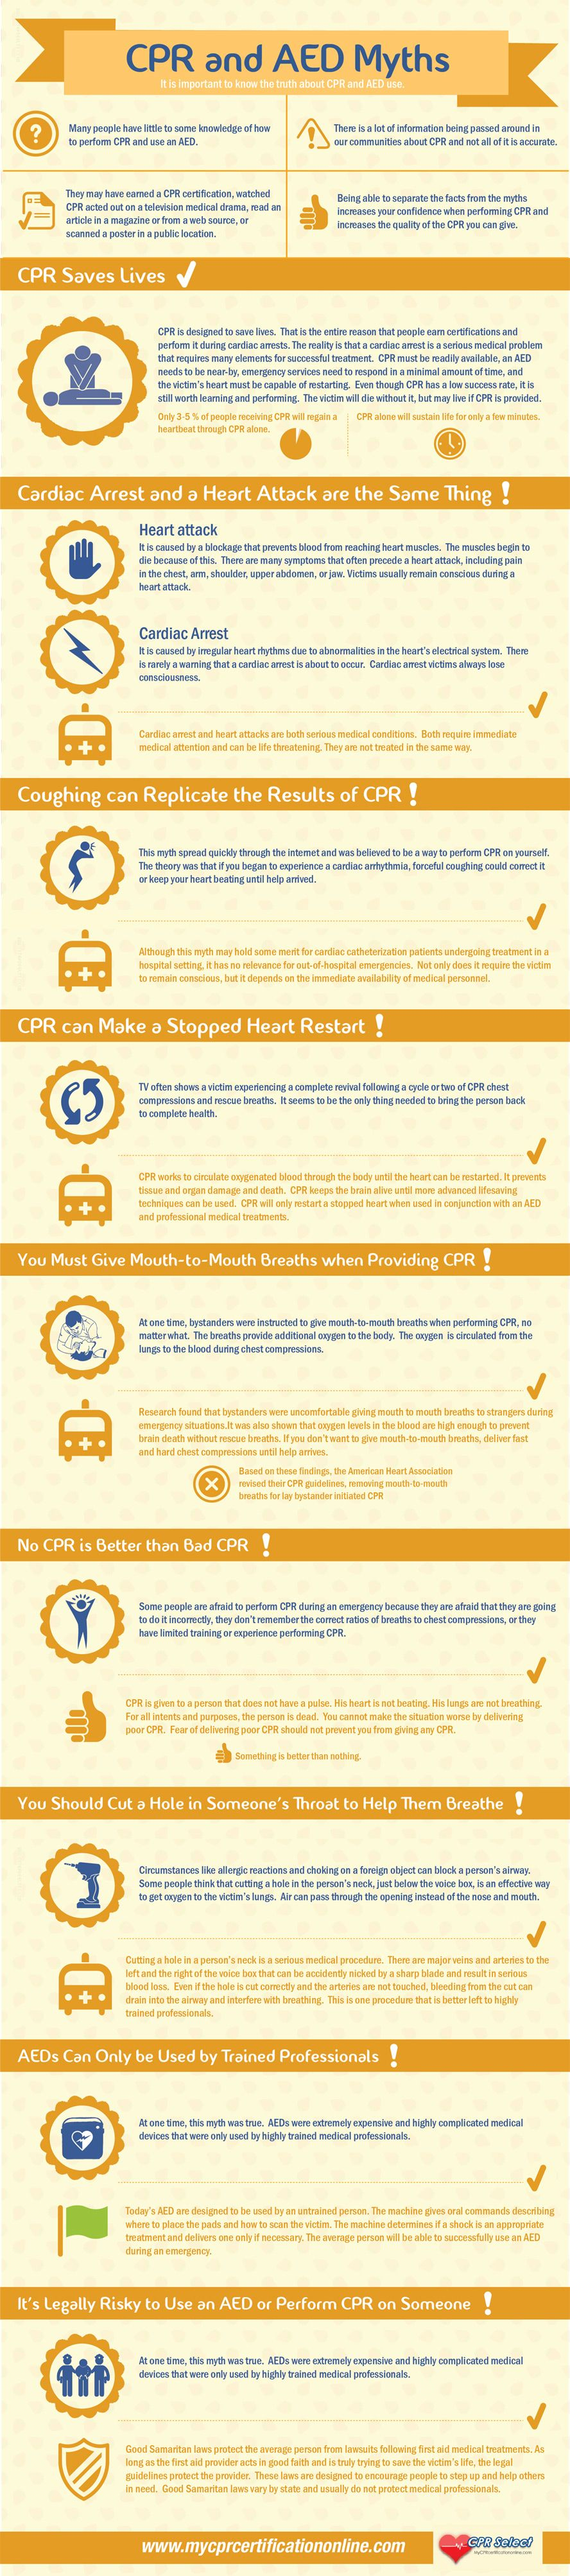 Cpr and aed myths cpr select infographic medicine i love y cpr and aed myths cpr select infographic 1betcityfo Gallery